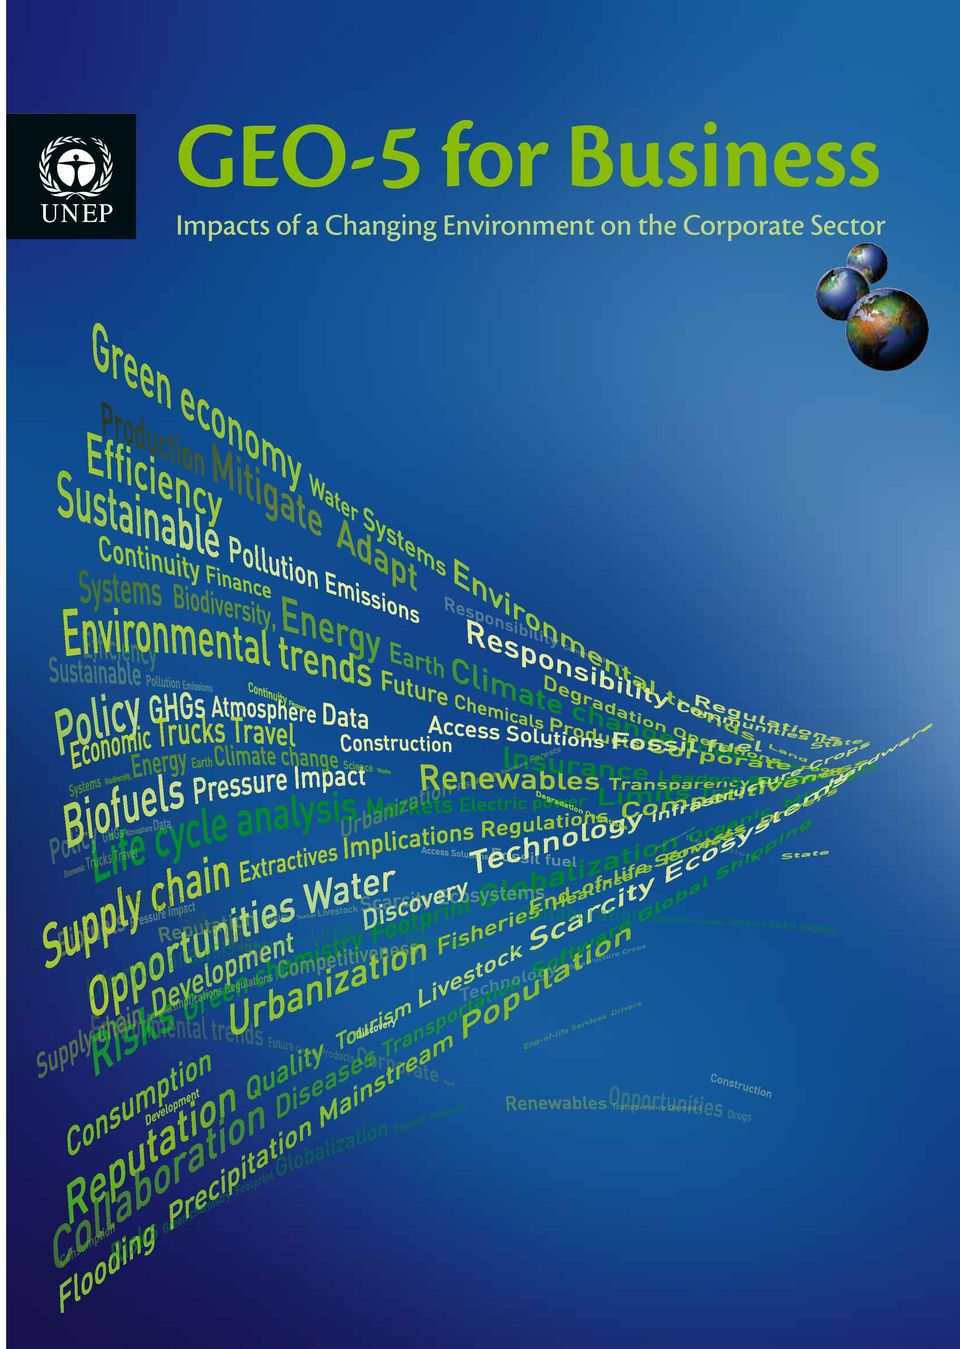 The report assesses the operational, market, reputational, and policy implications of environmental trends on ten business sectors.